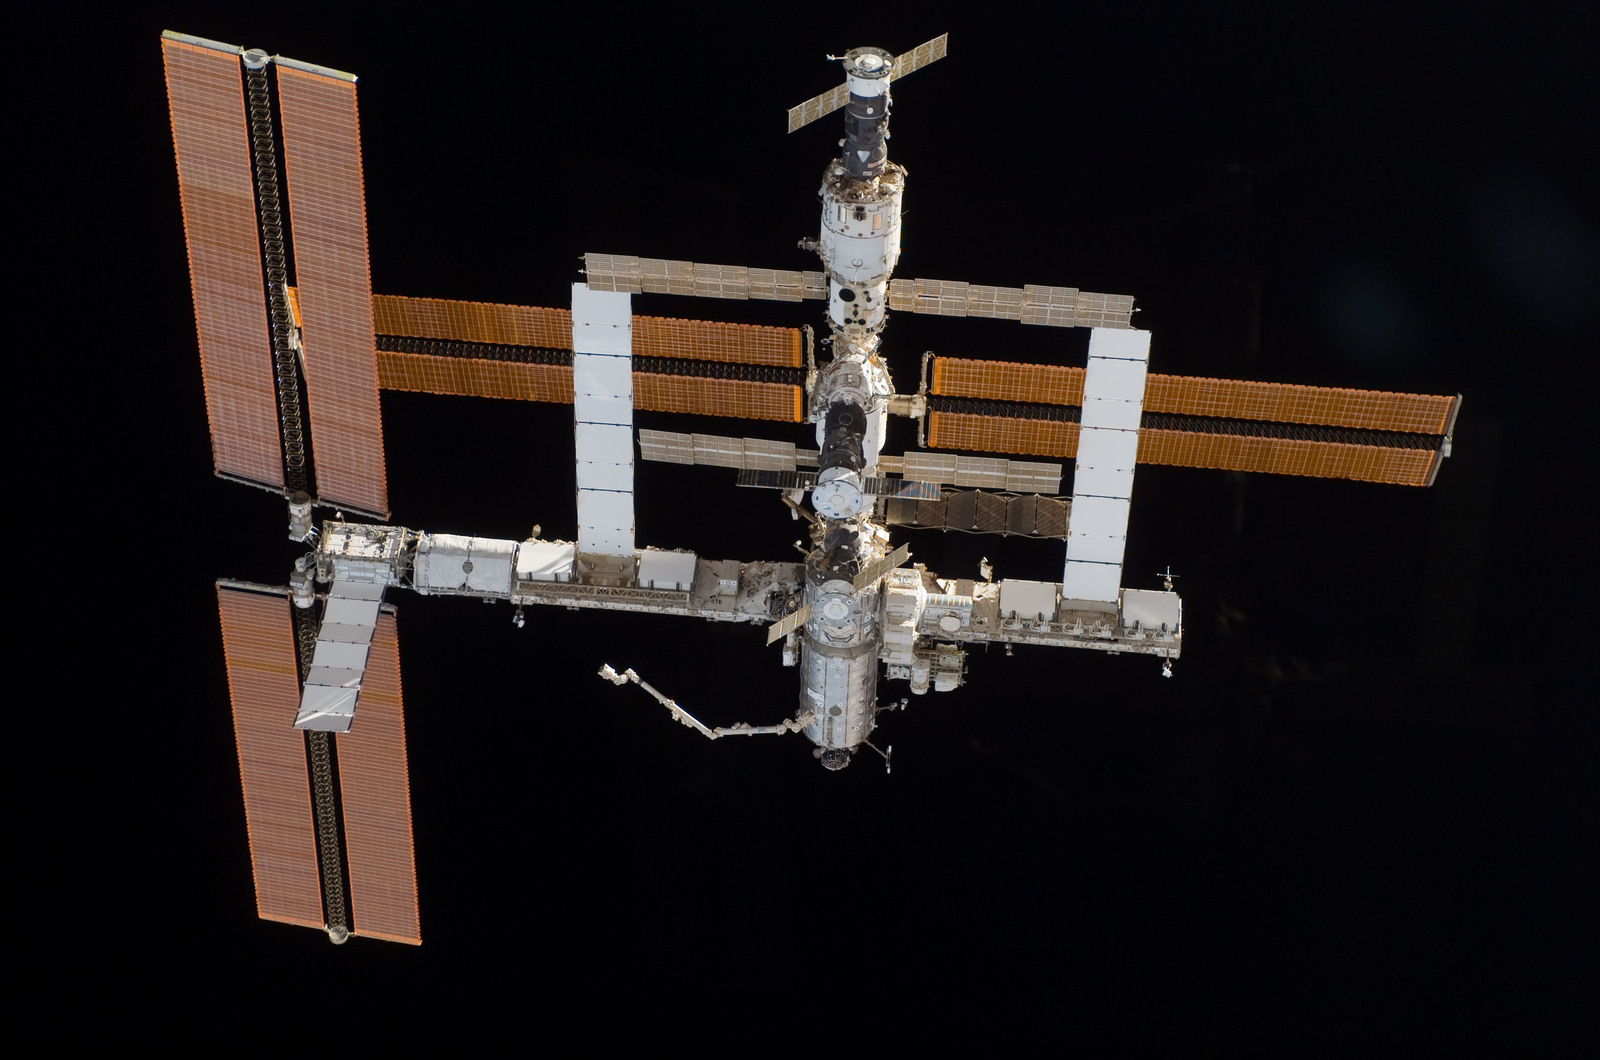 S115E06715 - STS-115 - Overall exterior view of the ISS during undocking and Flyaround Operations for STS-115 Space Shuttle Atlantis